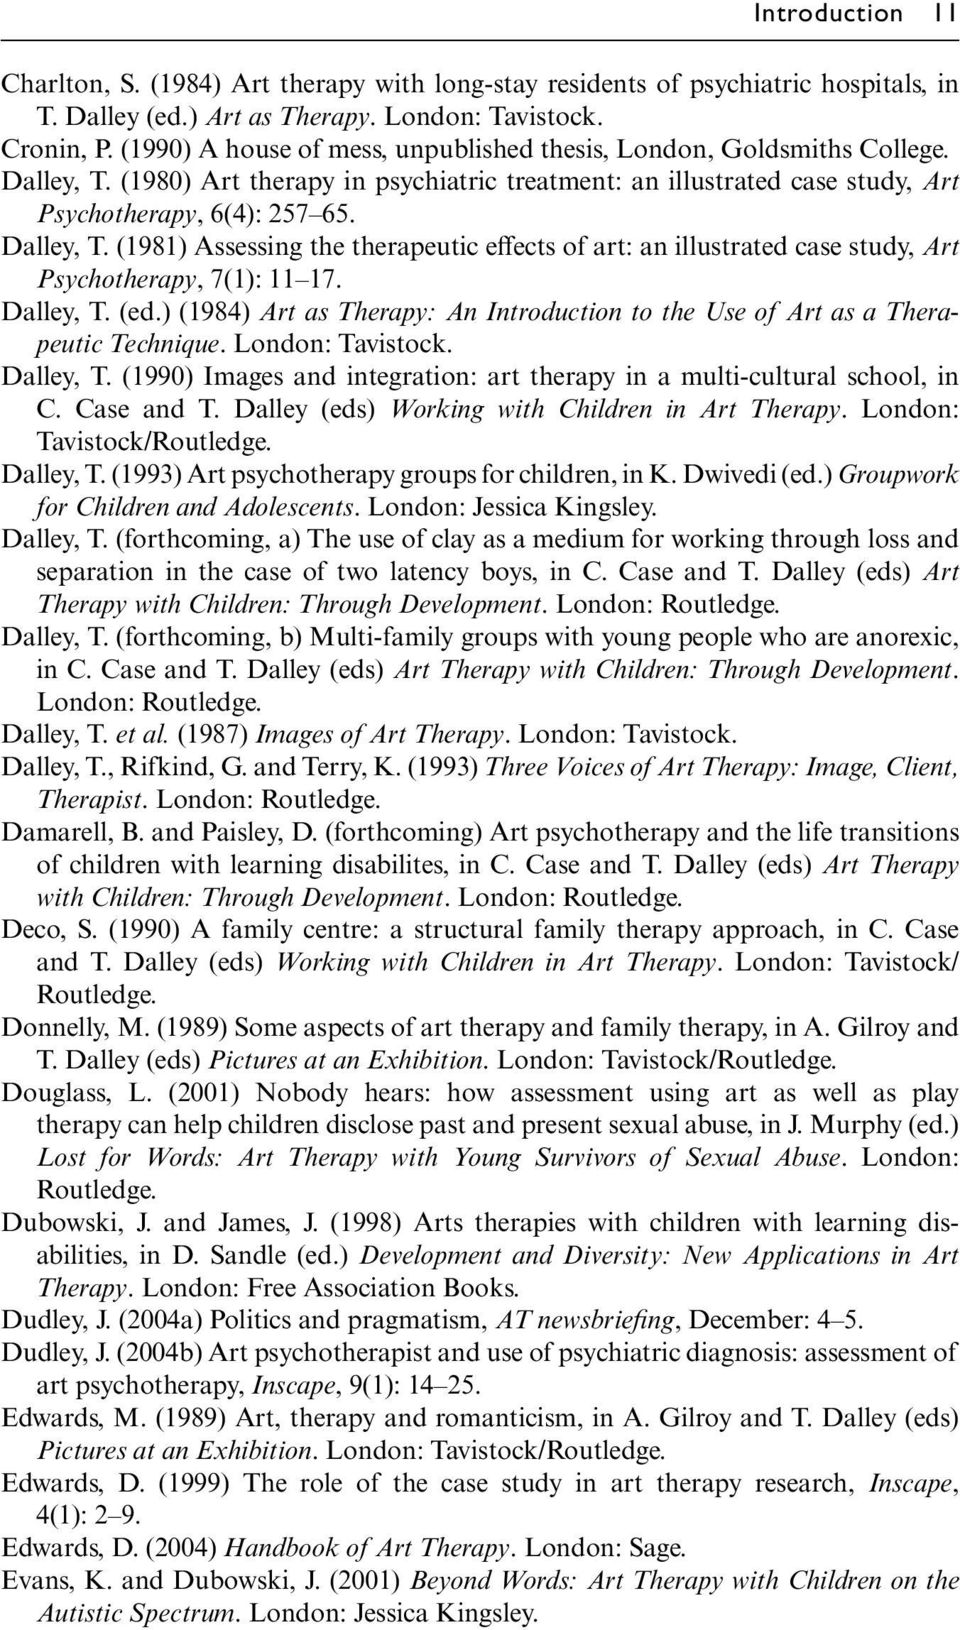 Dalley, T. (ed.) (1984) Art as Therapy: An Introduction to the Use of Art as a Therapeutic Technique. London: Tavistock. Dalley, T.